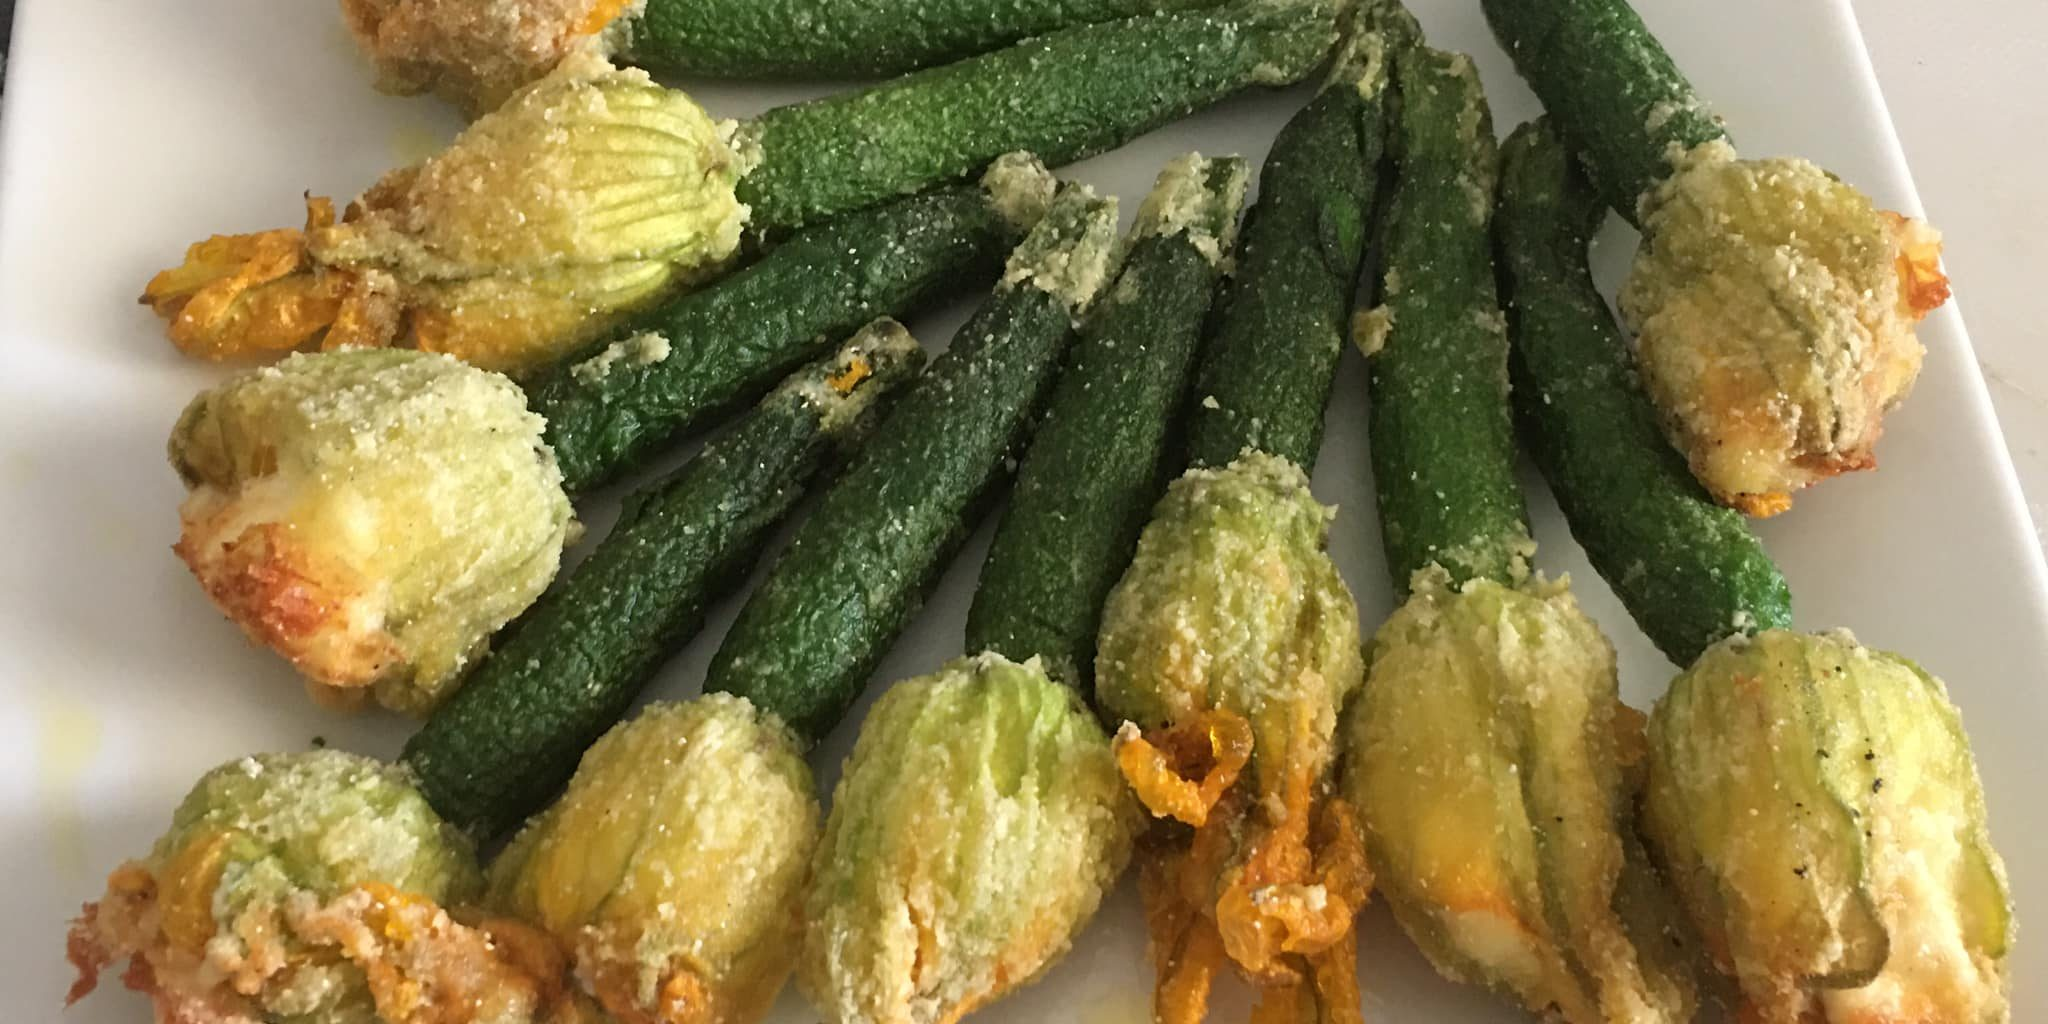 Stuffed Zucchini Flowers With Ricotta An Instant On The Lips